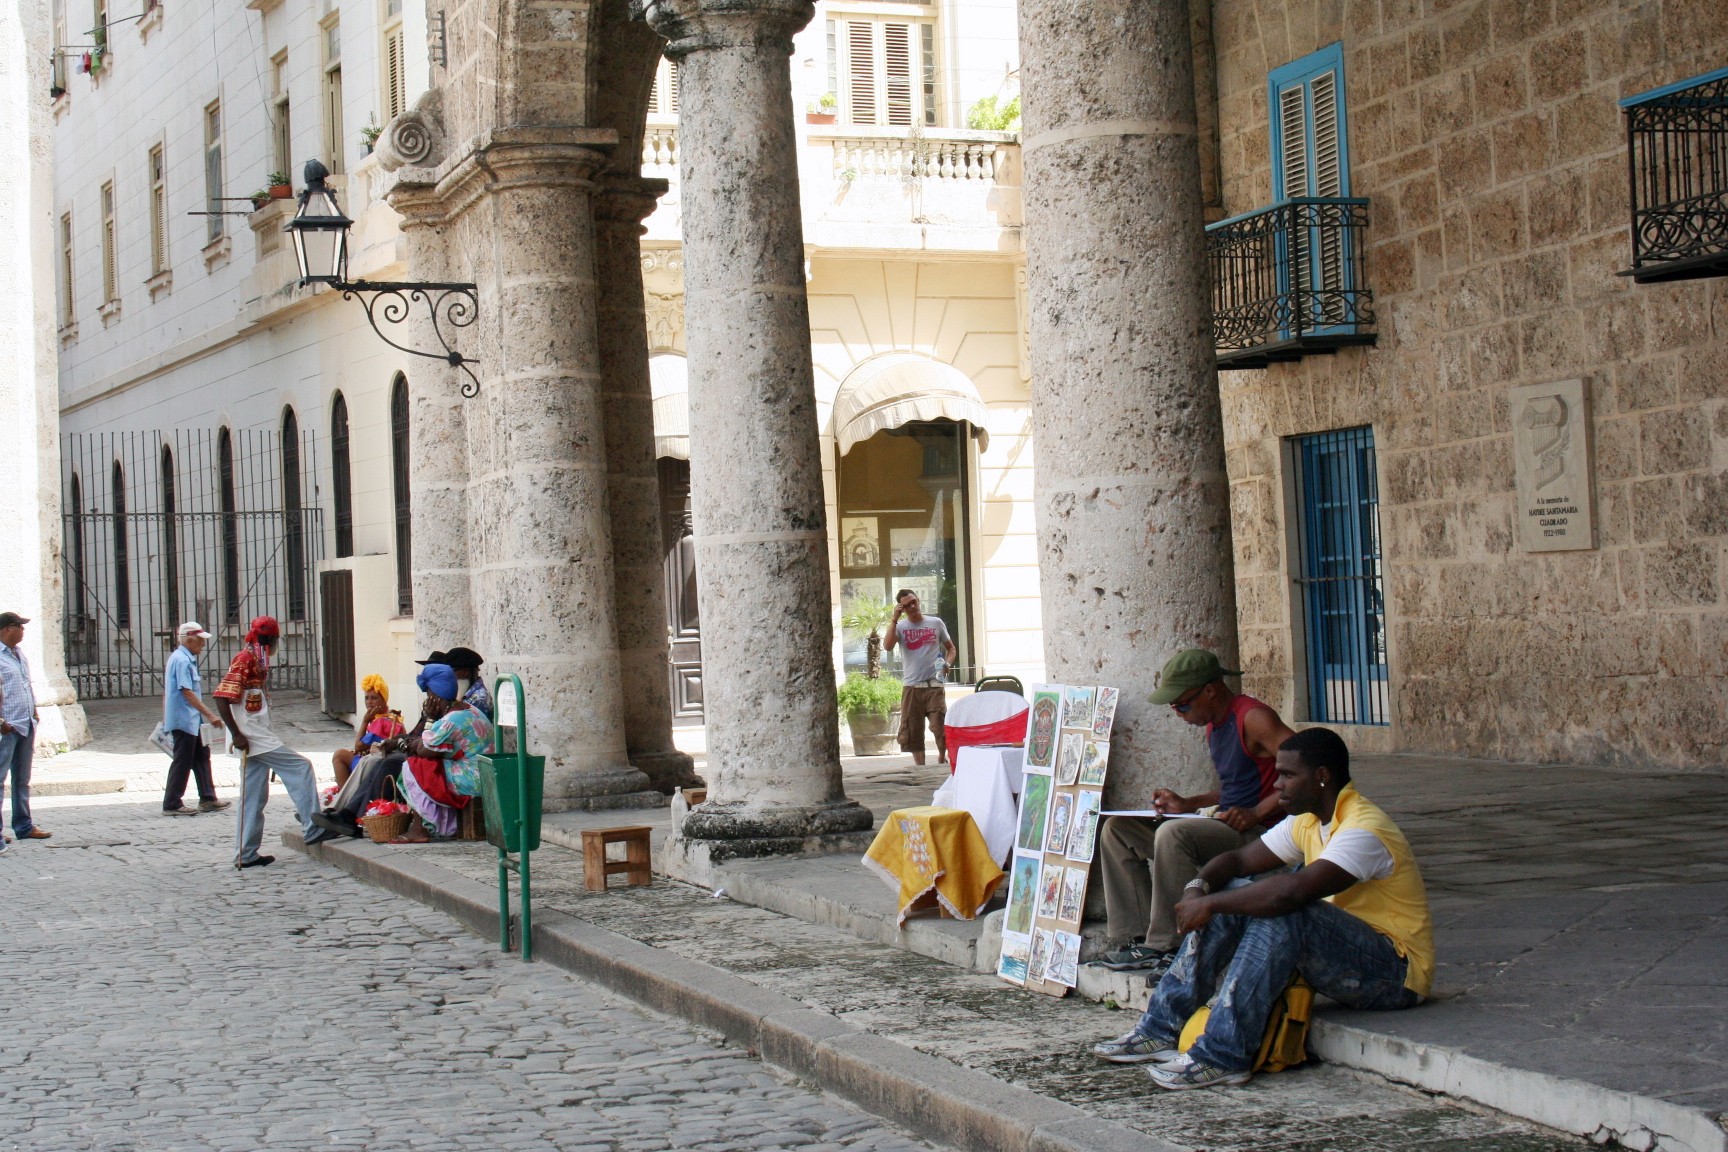 Cuba: Catholics call for renewal of this communist country